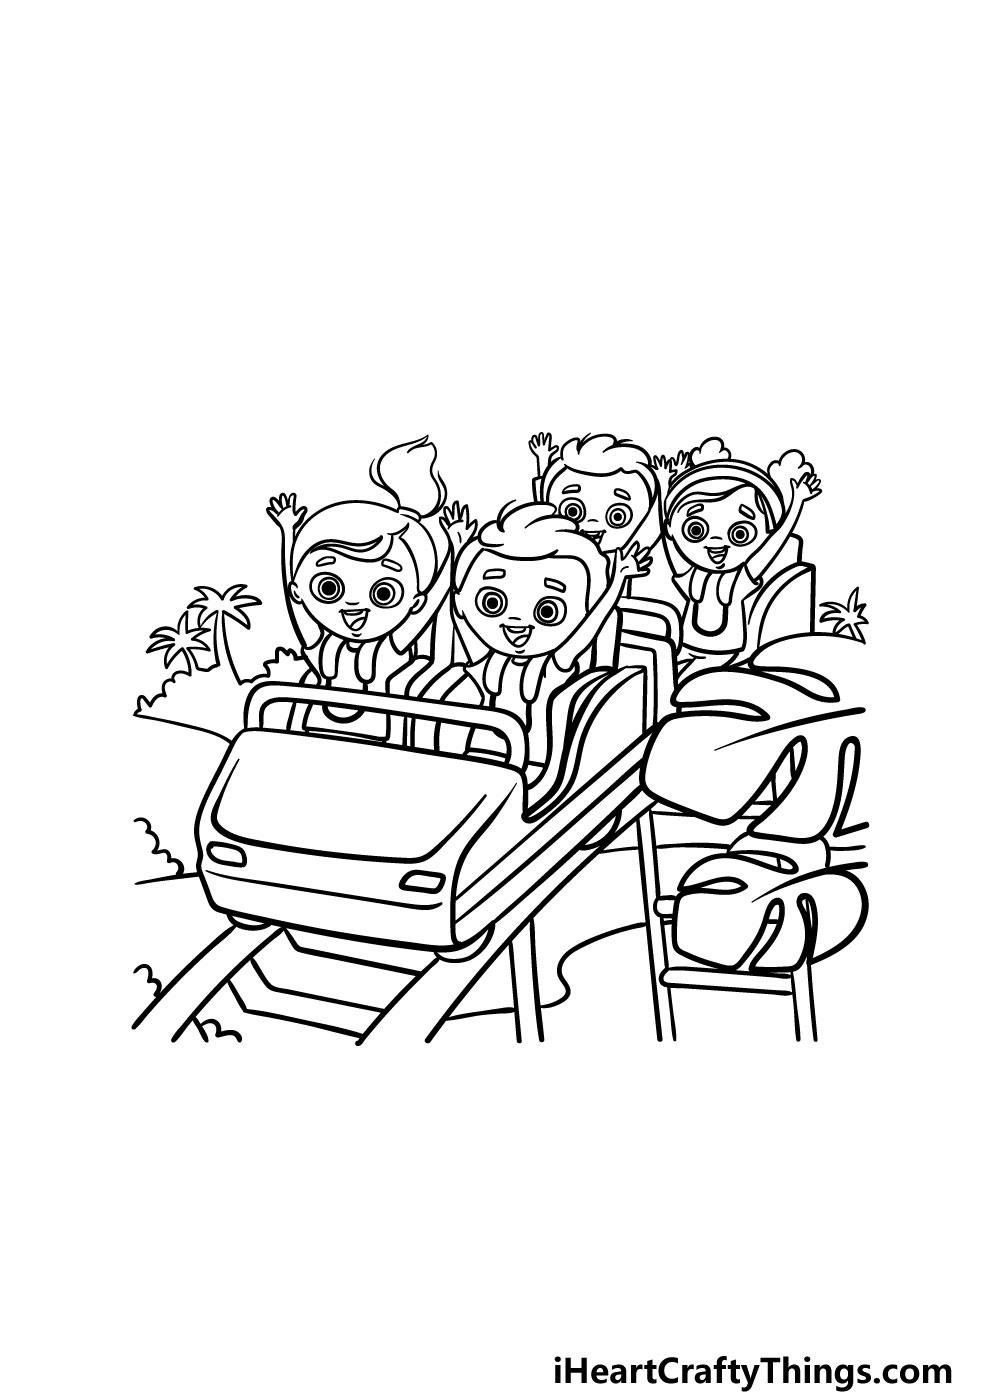 drawing a roller coaster step 6